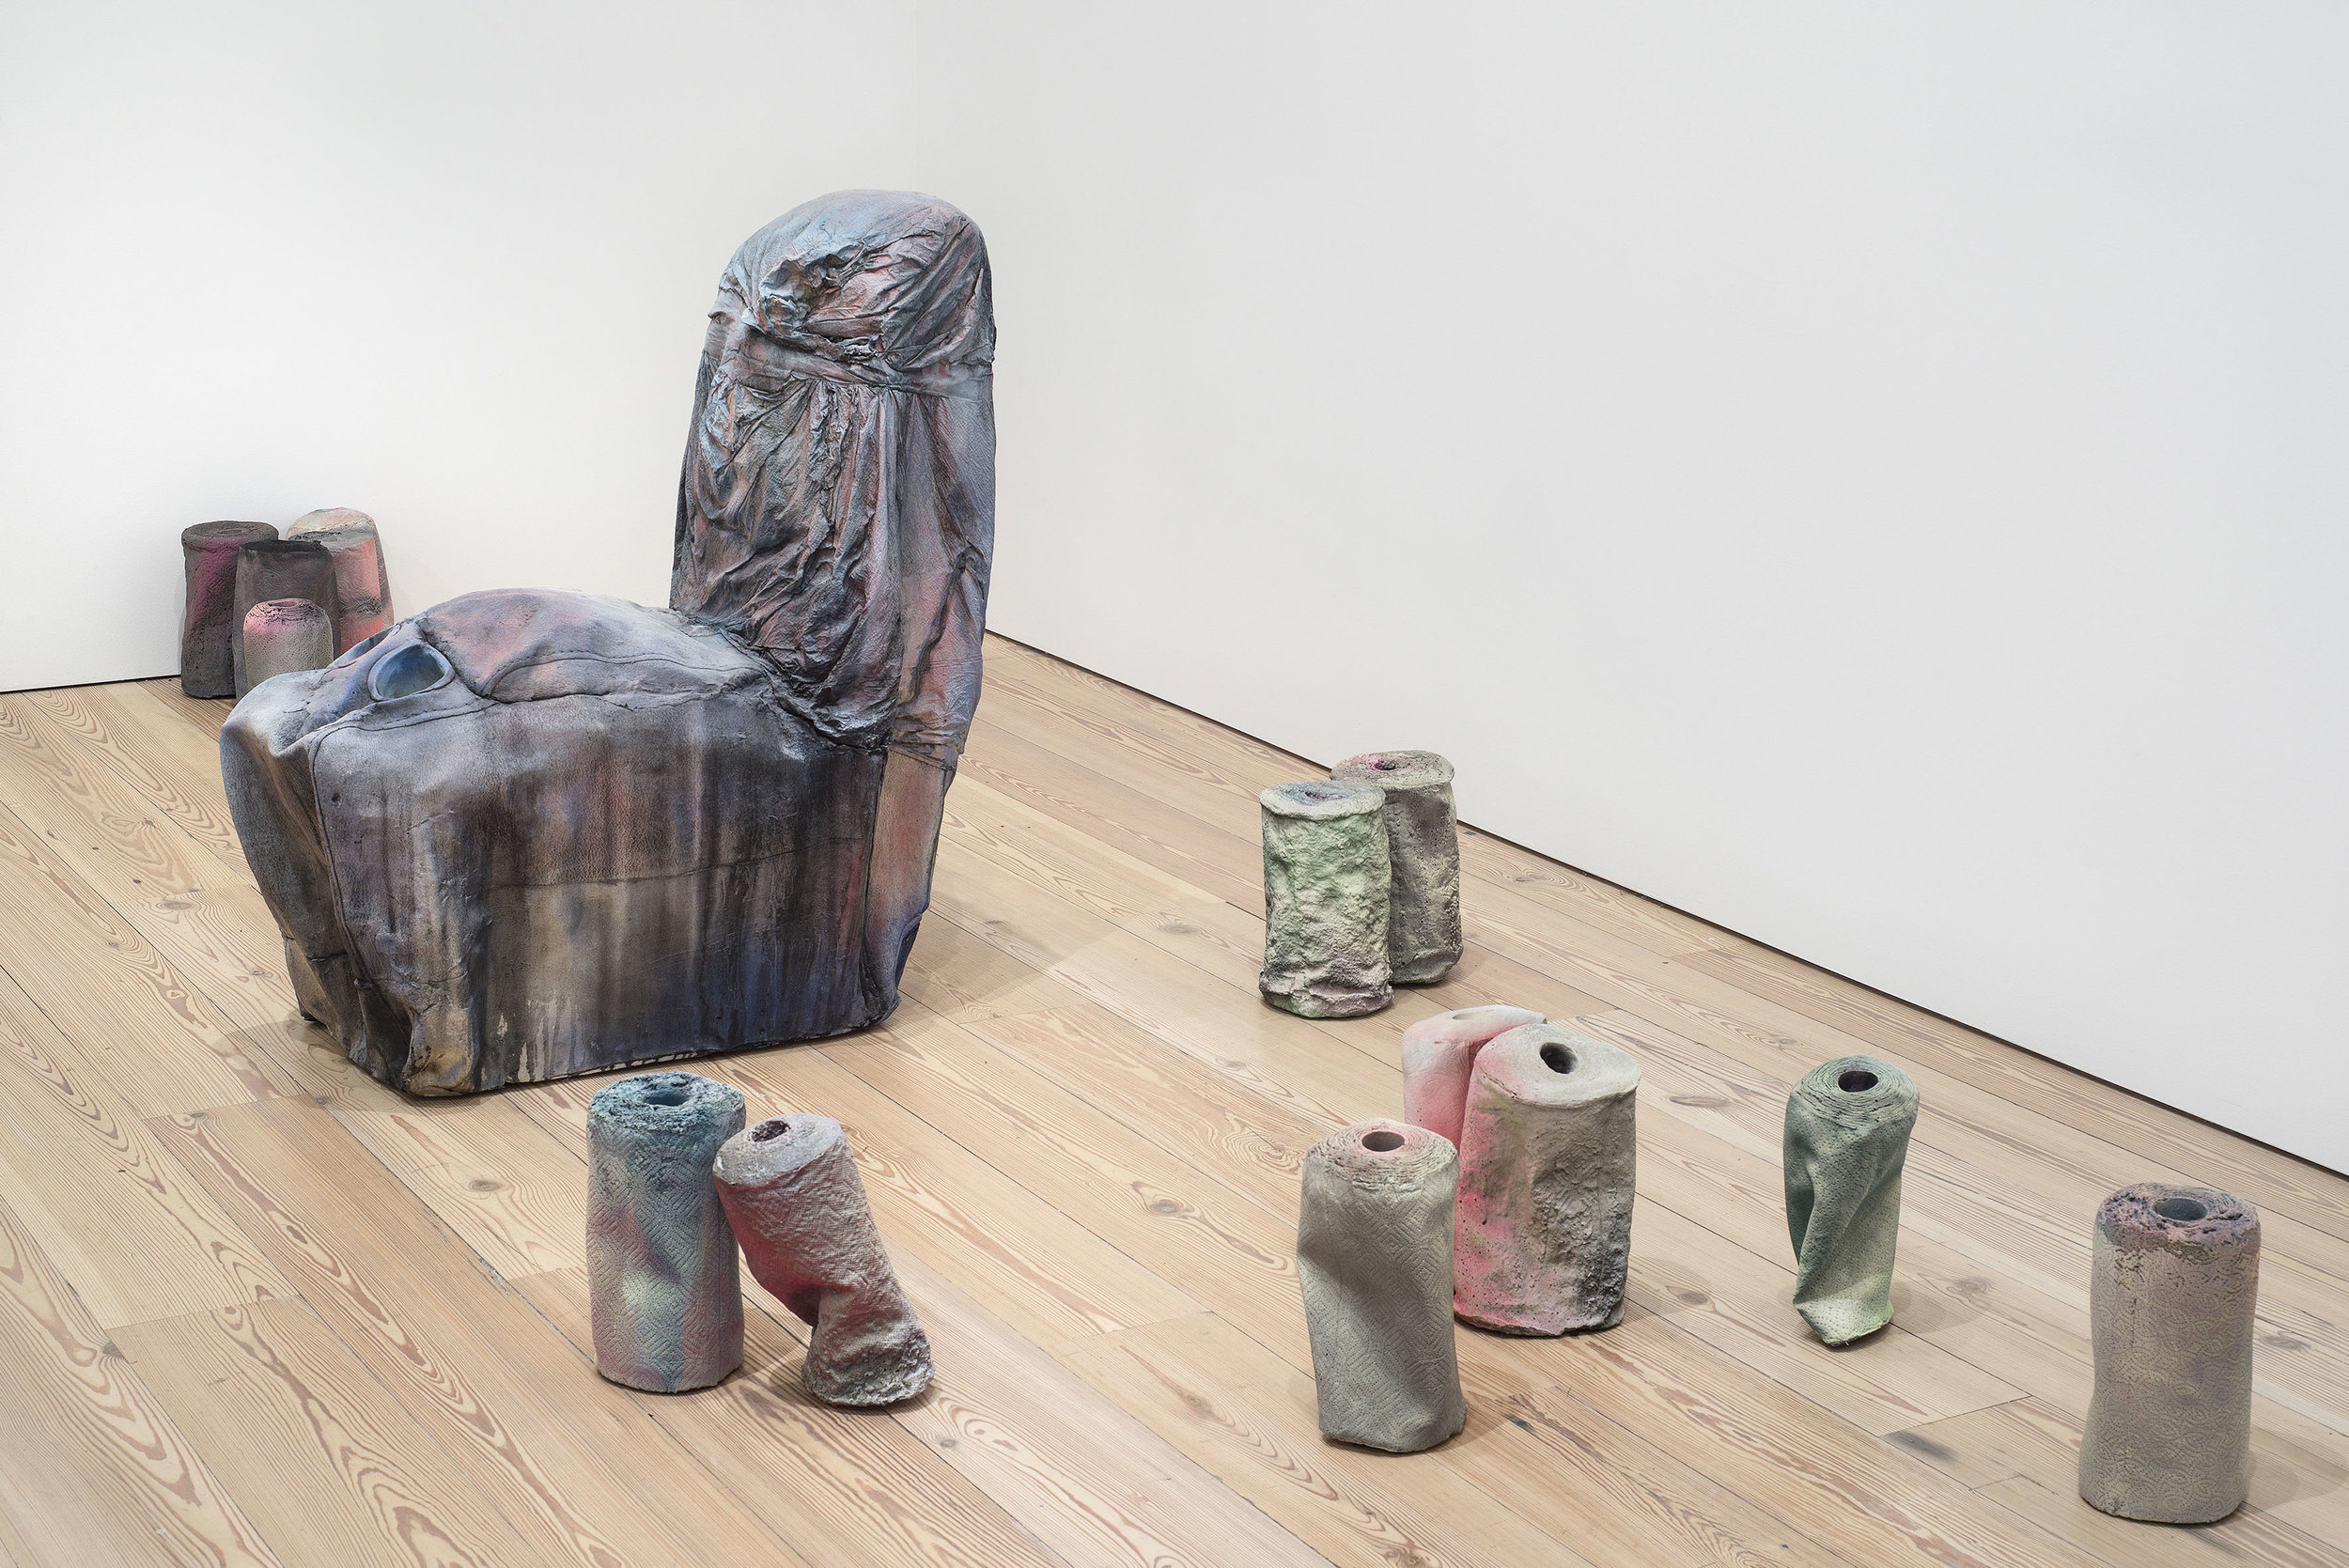 """KAARI UPSON. """"SUPPLEMENT I"""" (2016) AND """"T.T."""" (2017). URETHANE, PIGMENT AND ALUMINUM. INSTALLATION VIEW, WHITNEY MUSEUM OF AMERICAN ART, NEW YORK. © KAARI UPSON. COURTESY OF THE ARTIST, SPRÜTH MAGERS, AND MASSIMO DE"""